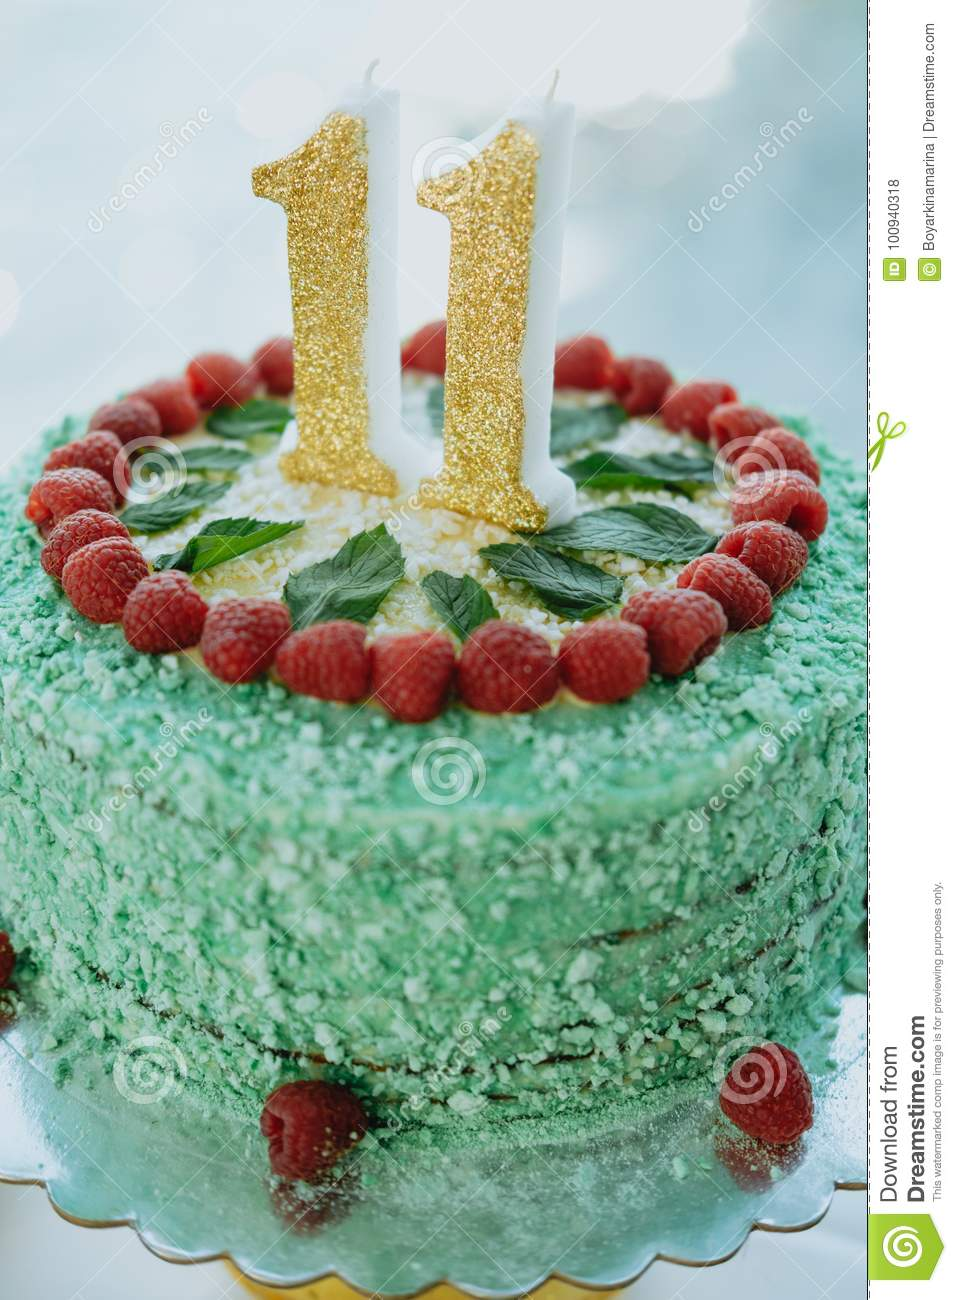 Green Cake With Number 11 On The Table